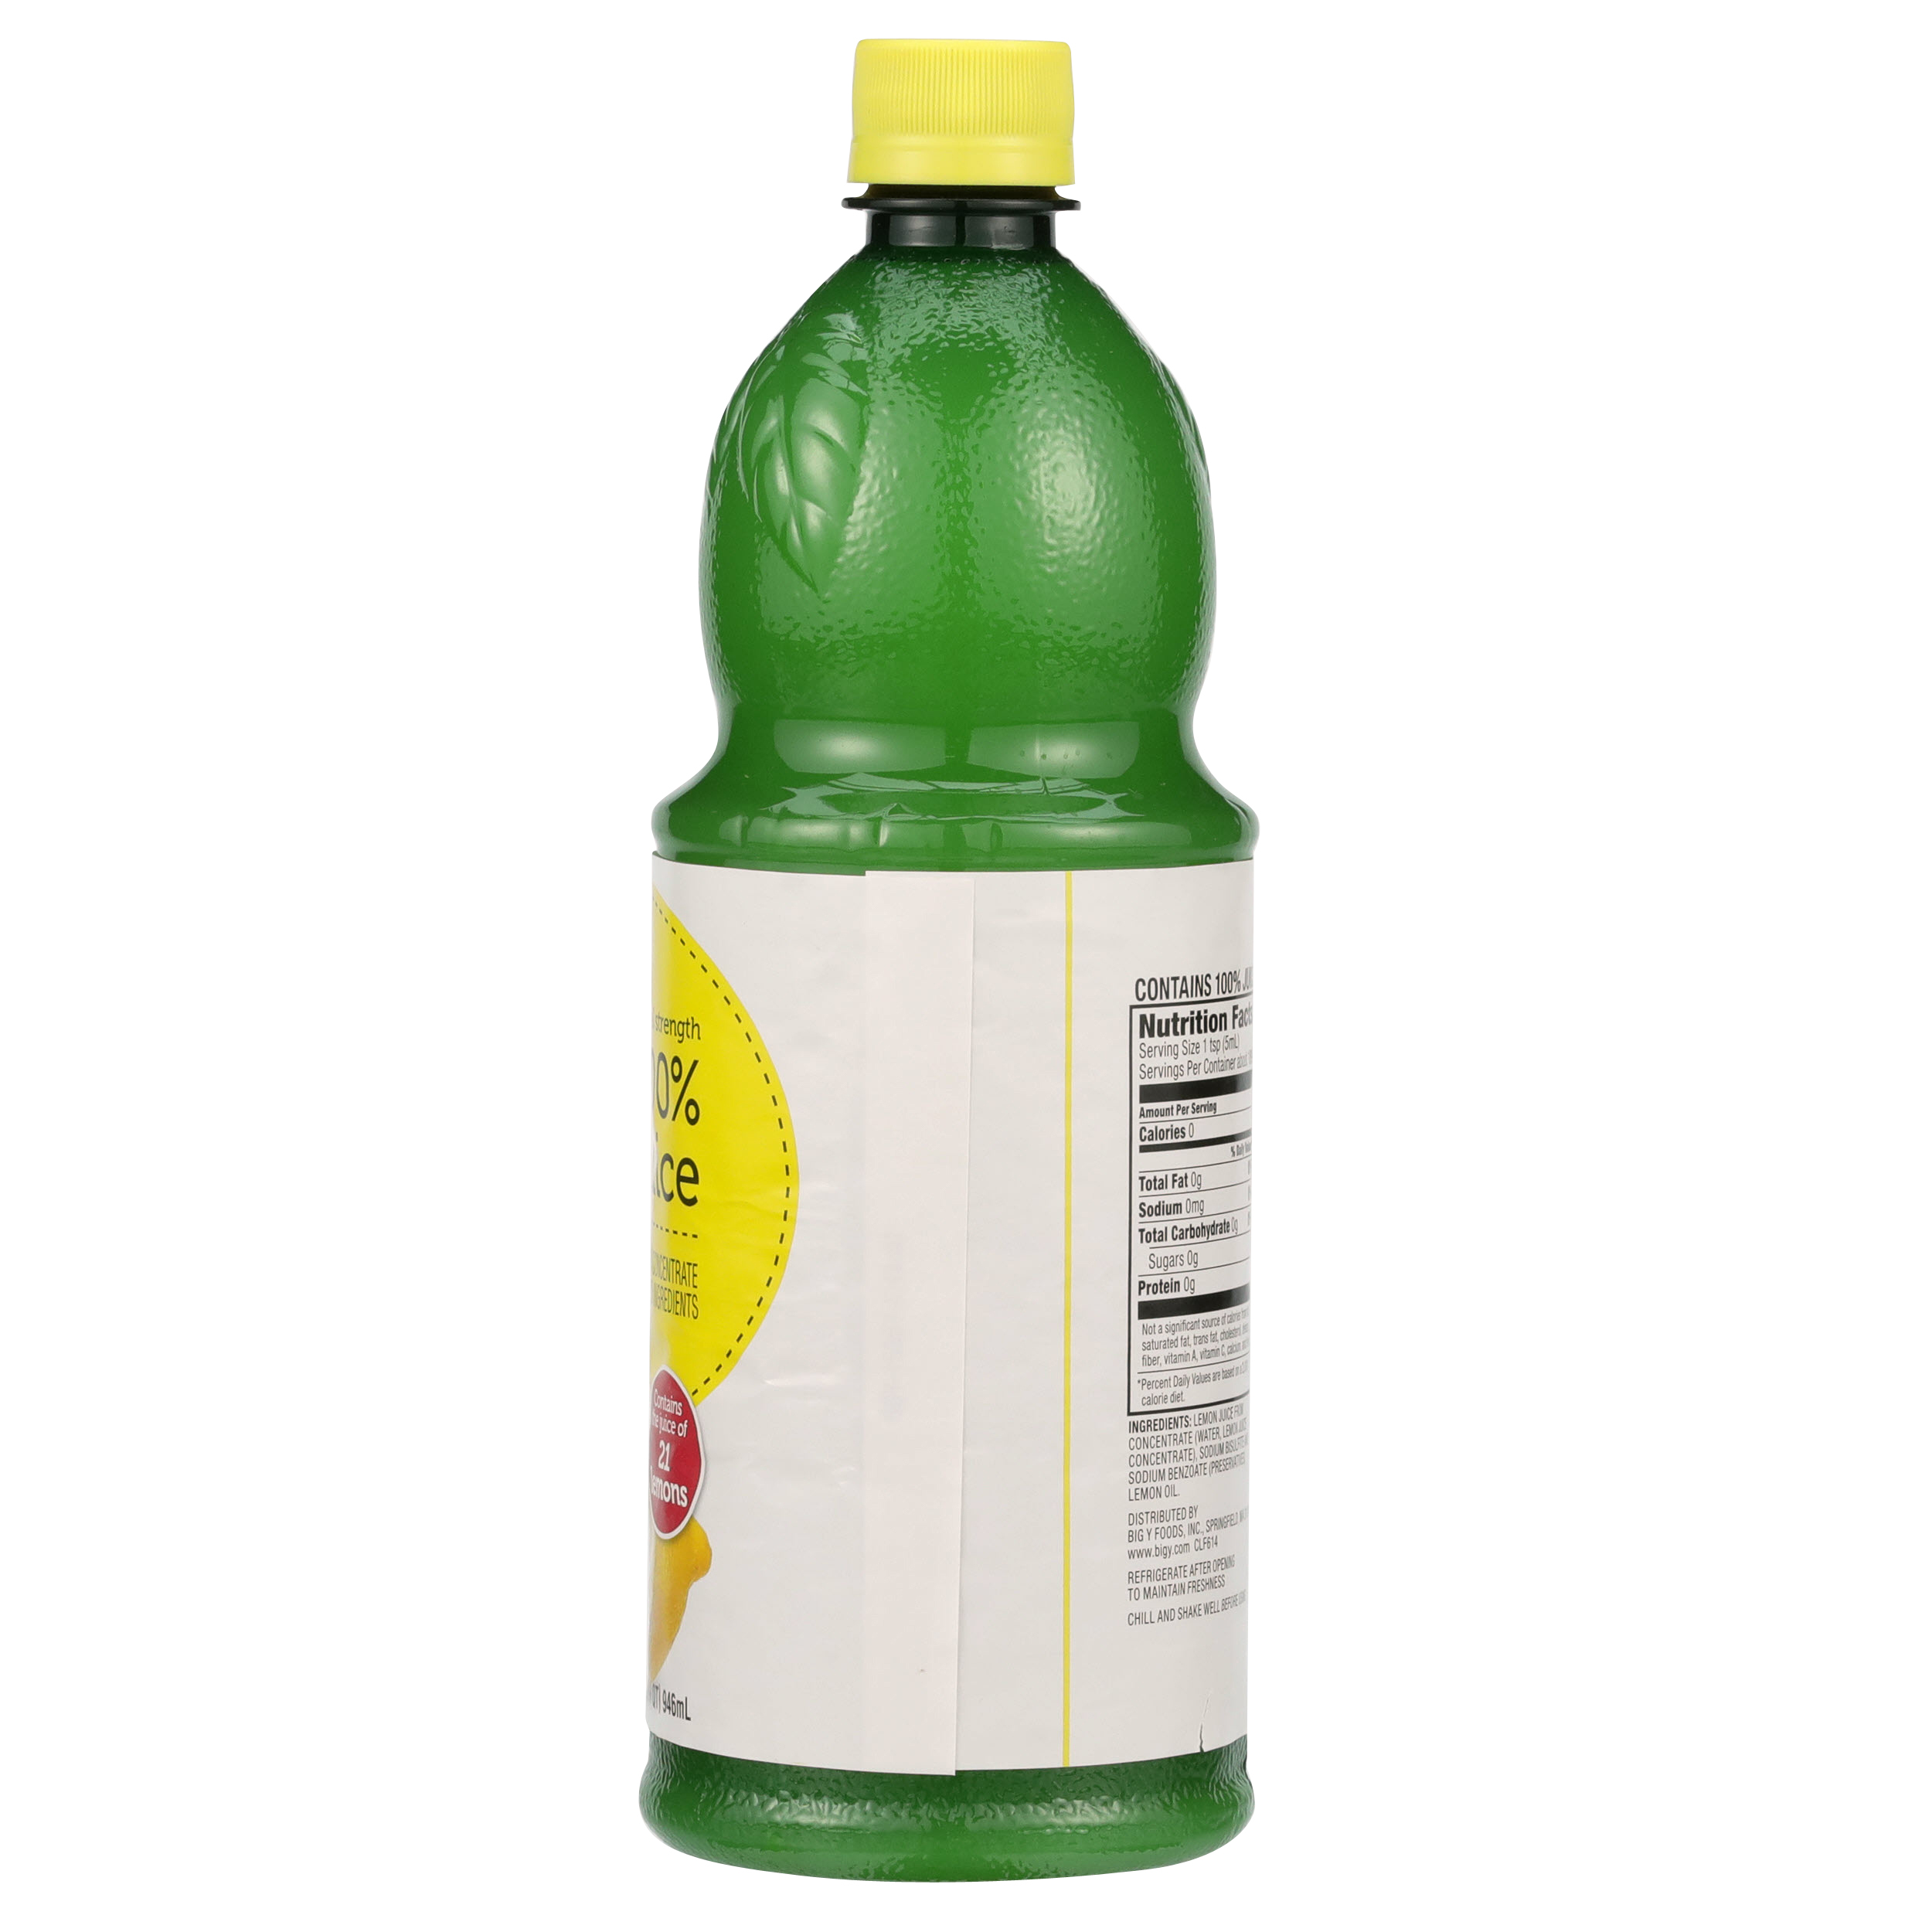 Smartlabel 100 Lemon Juice From Concentrate With Added Ingredients 018894153573